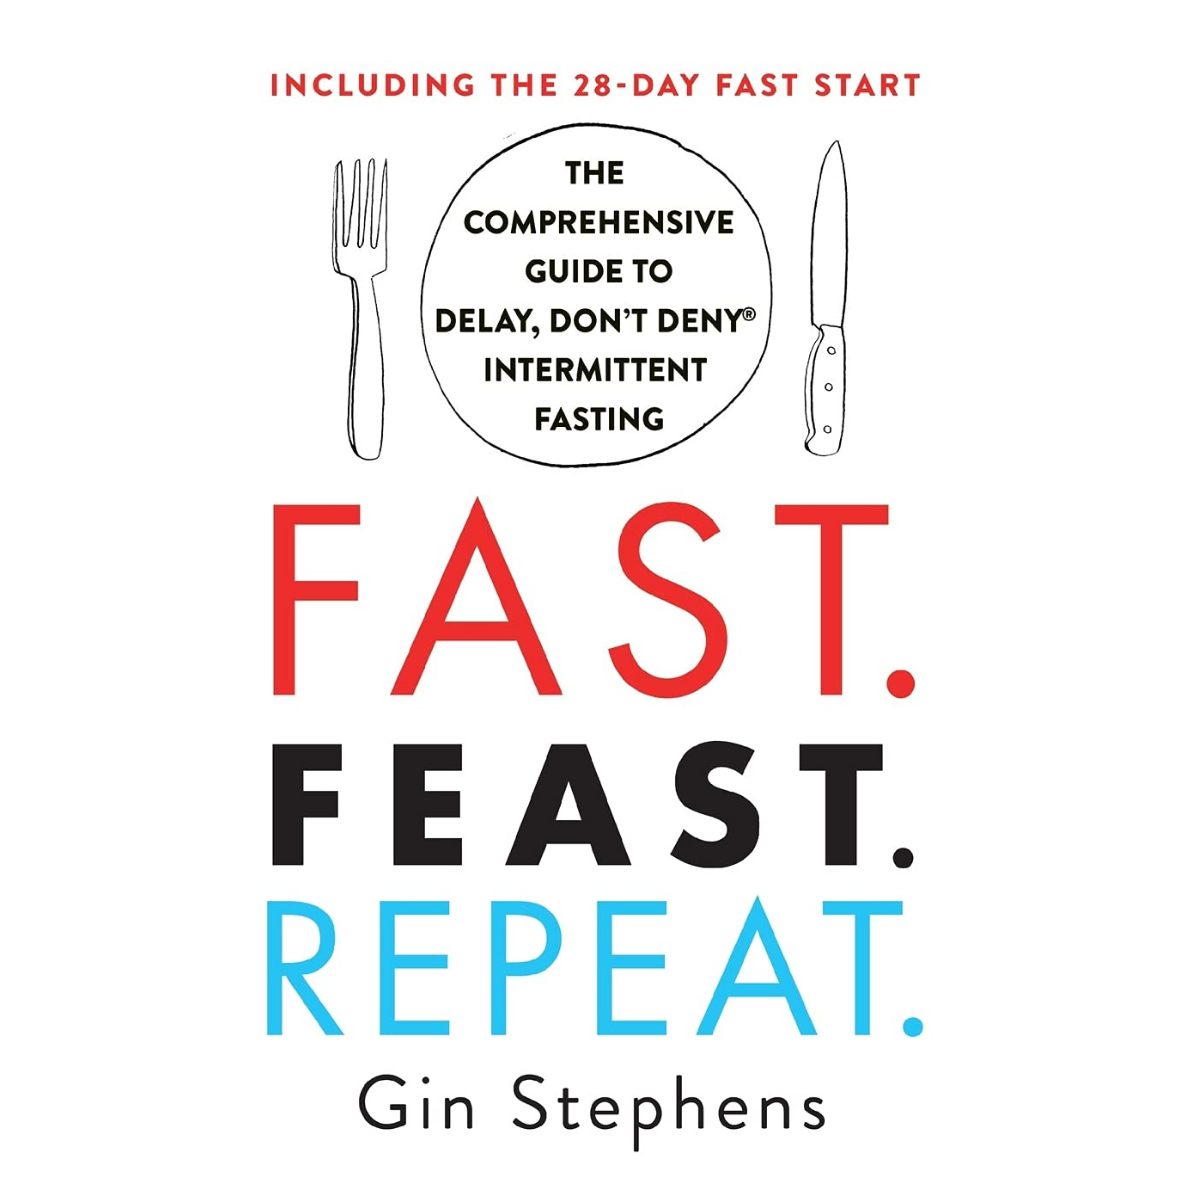 Fast Feast Repeat The Comprehensive Guide to Delay Don t Deny r Intermittent Fasting Including the 28 Day Fast Start Amazon co uk Stephens Gin 9781250757623 Books Favourites